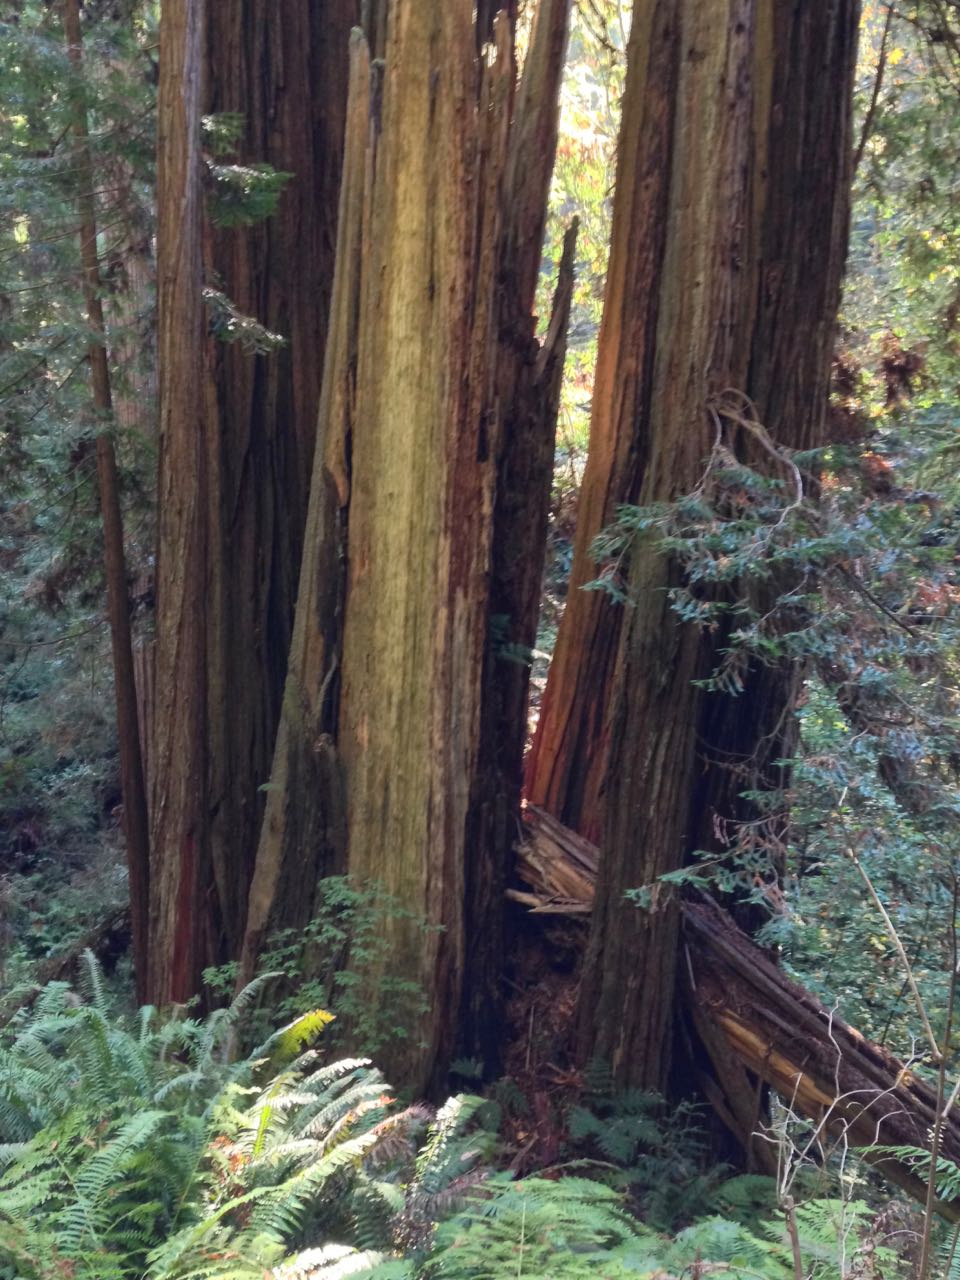 Redwoods 2017 10 08 227 Of 287